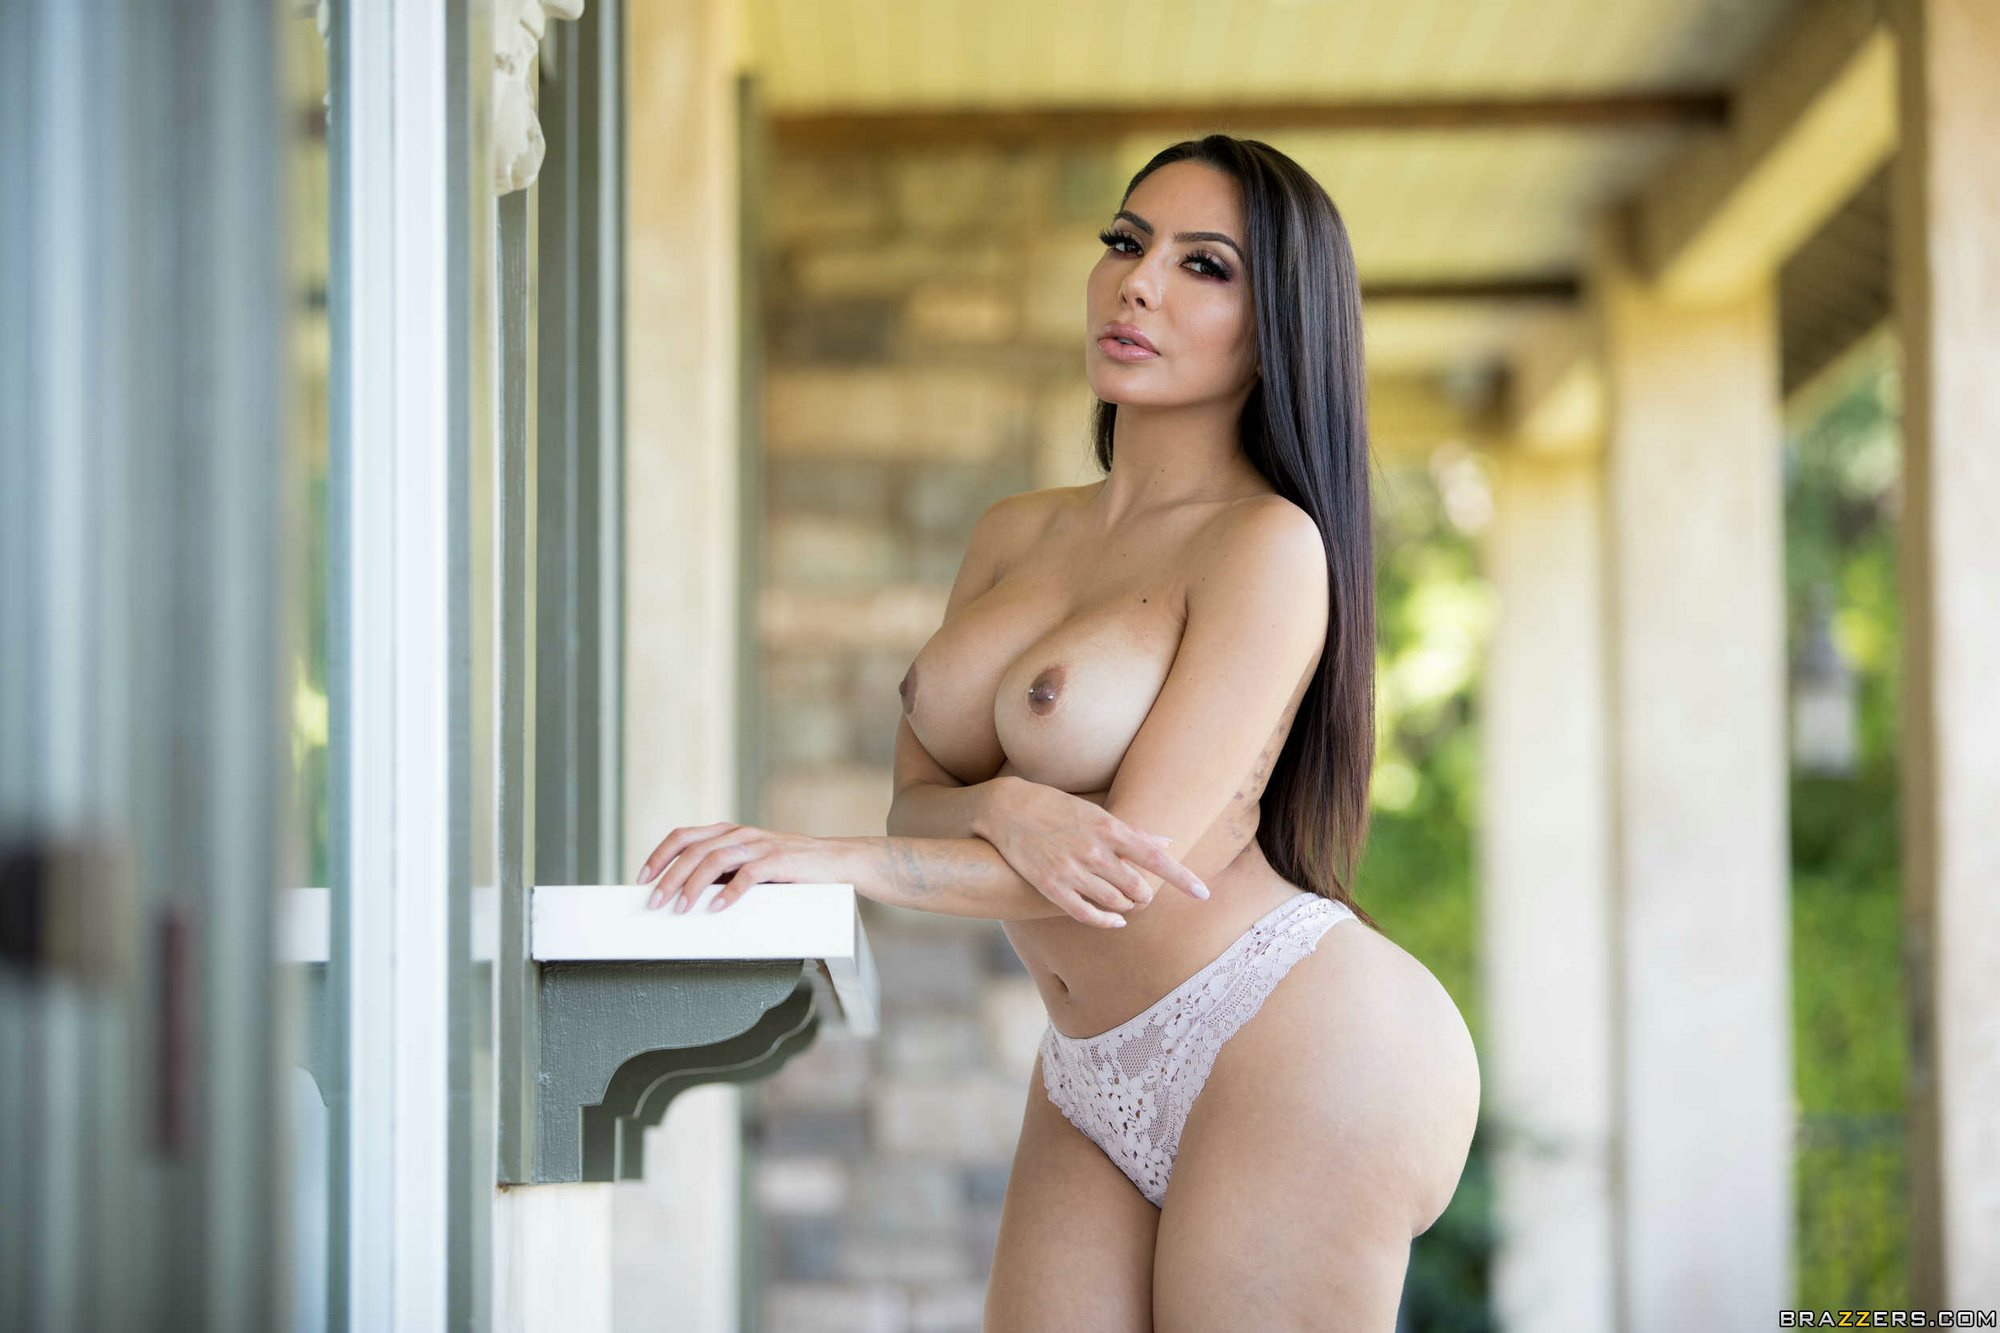 Lela Star Does A Striptease On The Staircase